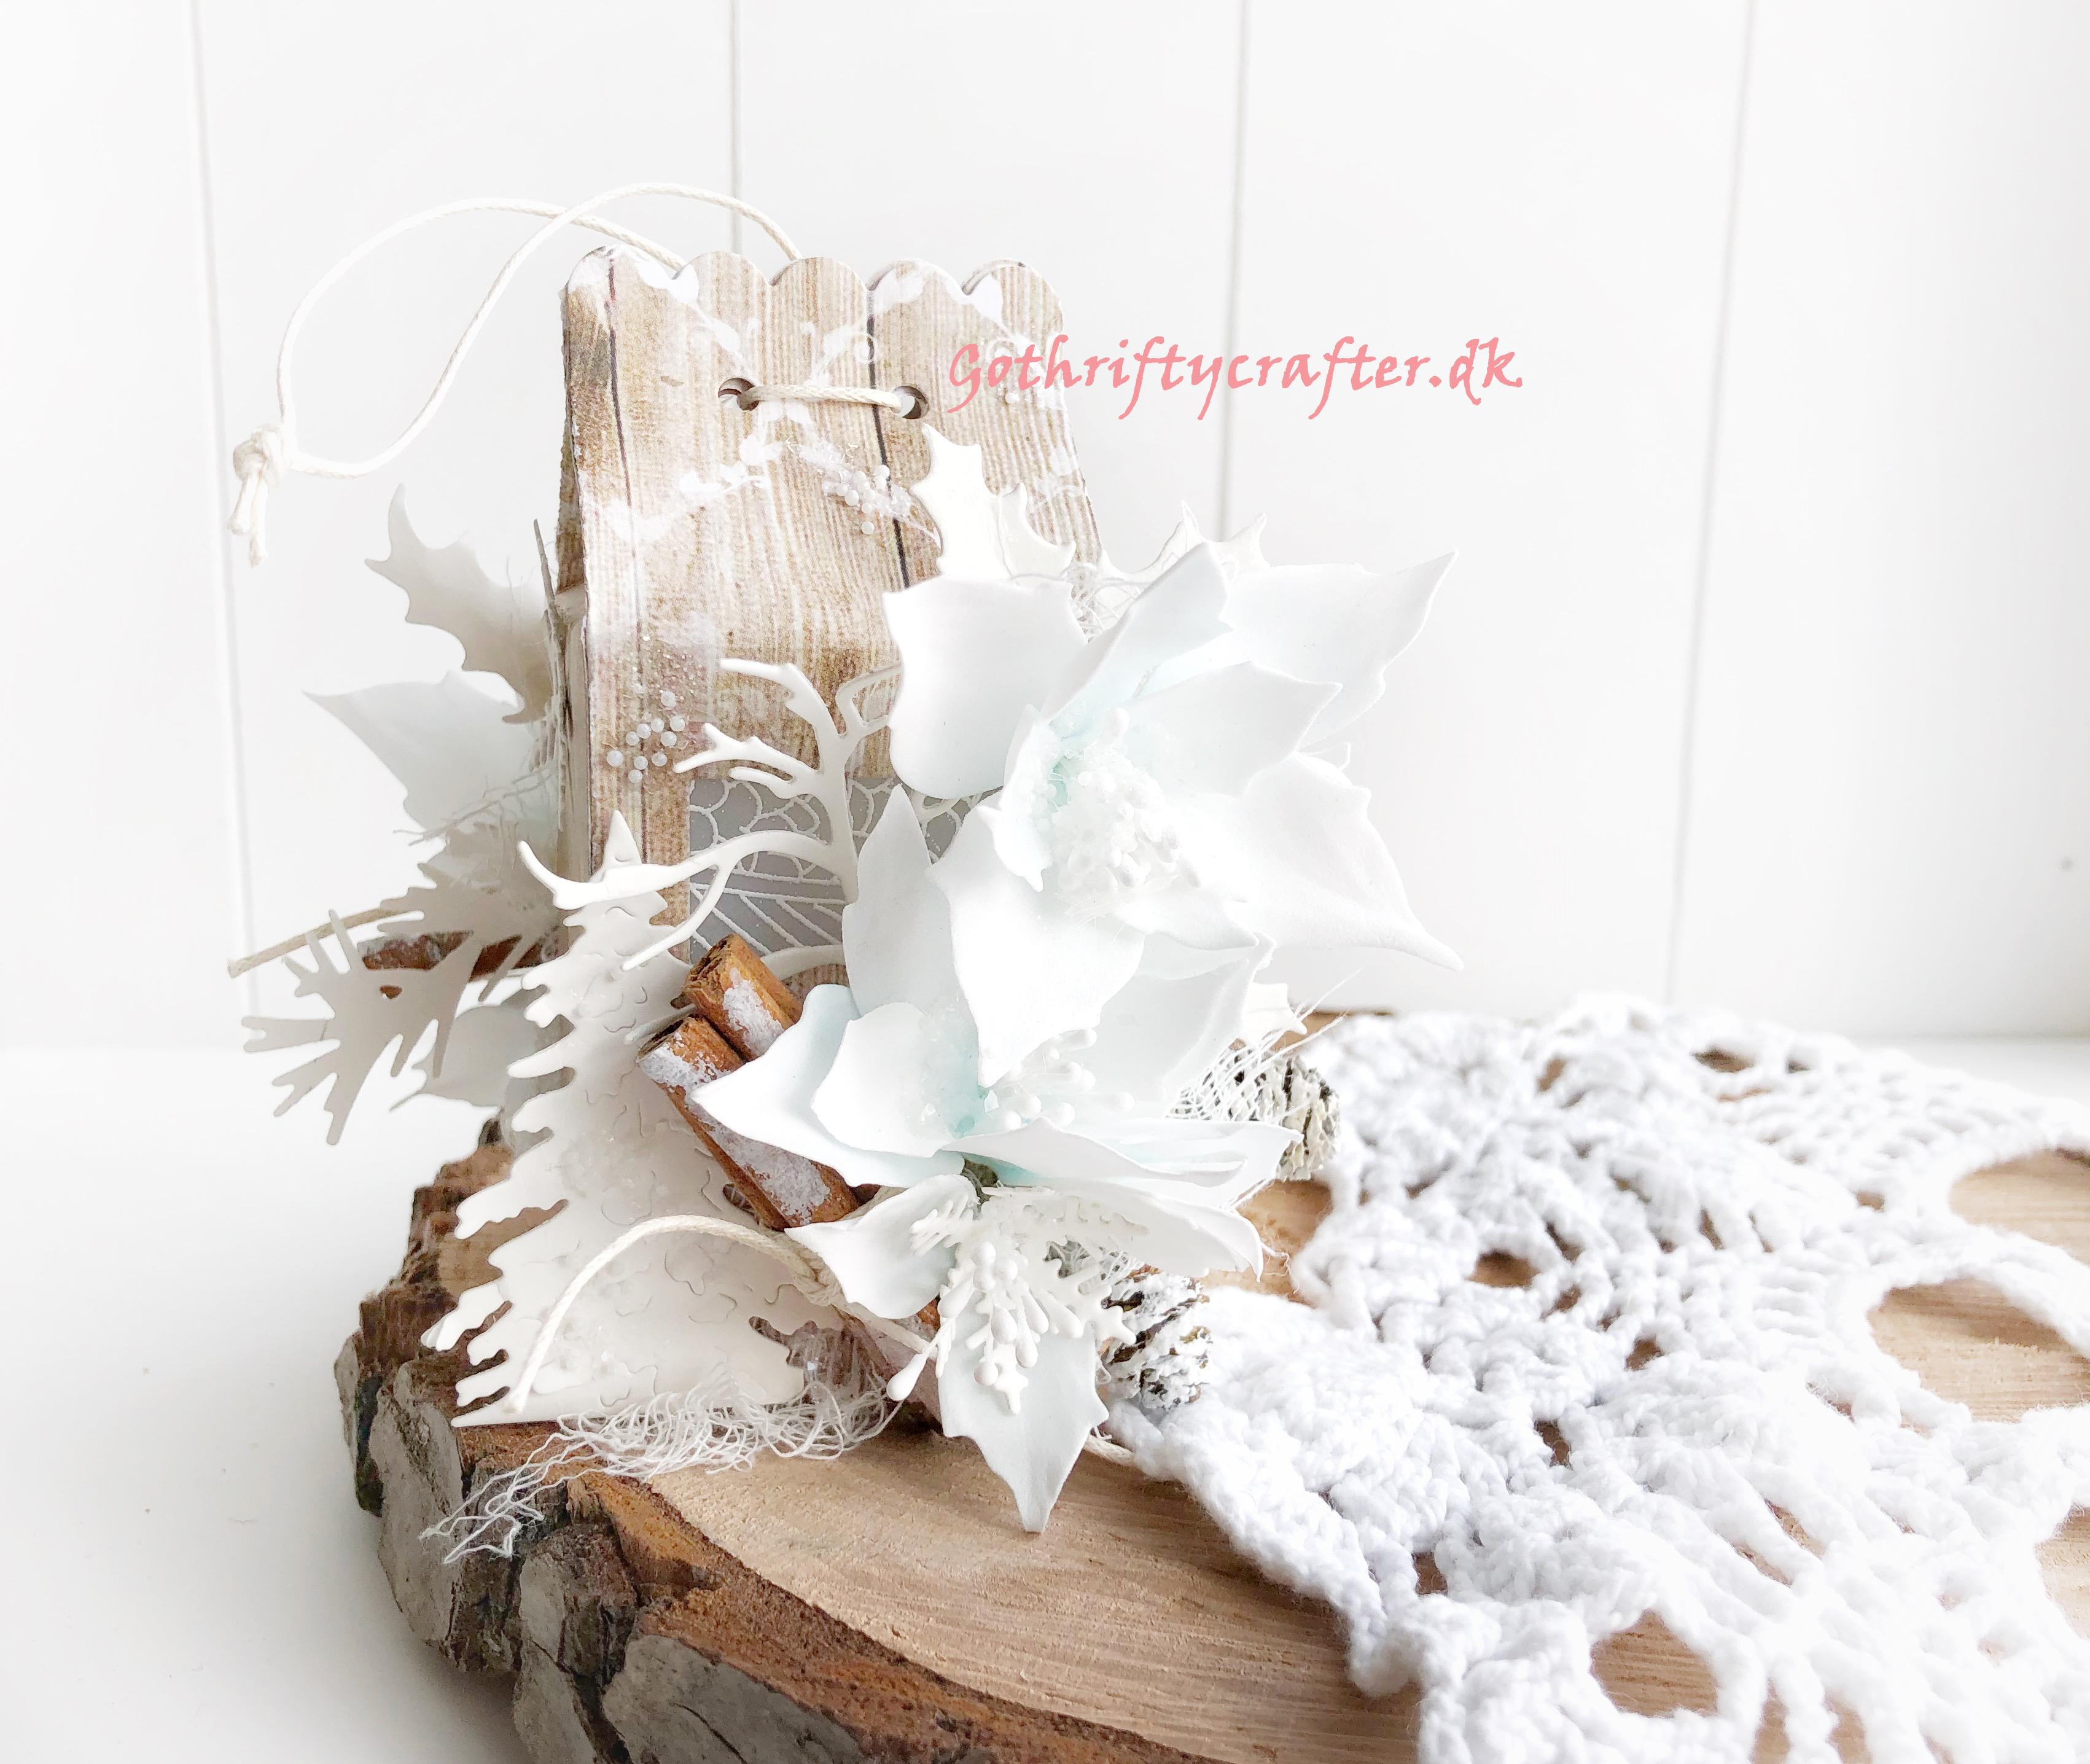 Gothriftycrafter Fabrika Decoru winter white snow foamiran flowers cinamon crystal wood house gift box Christmas New yearJPG